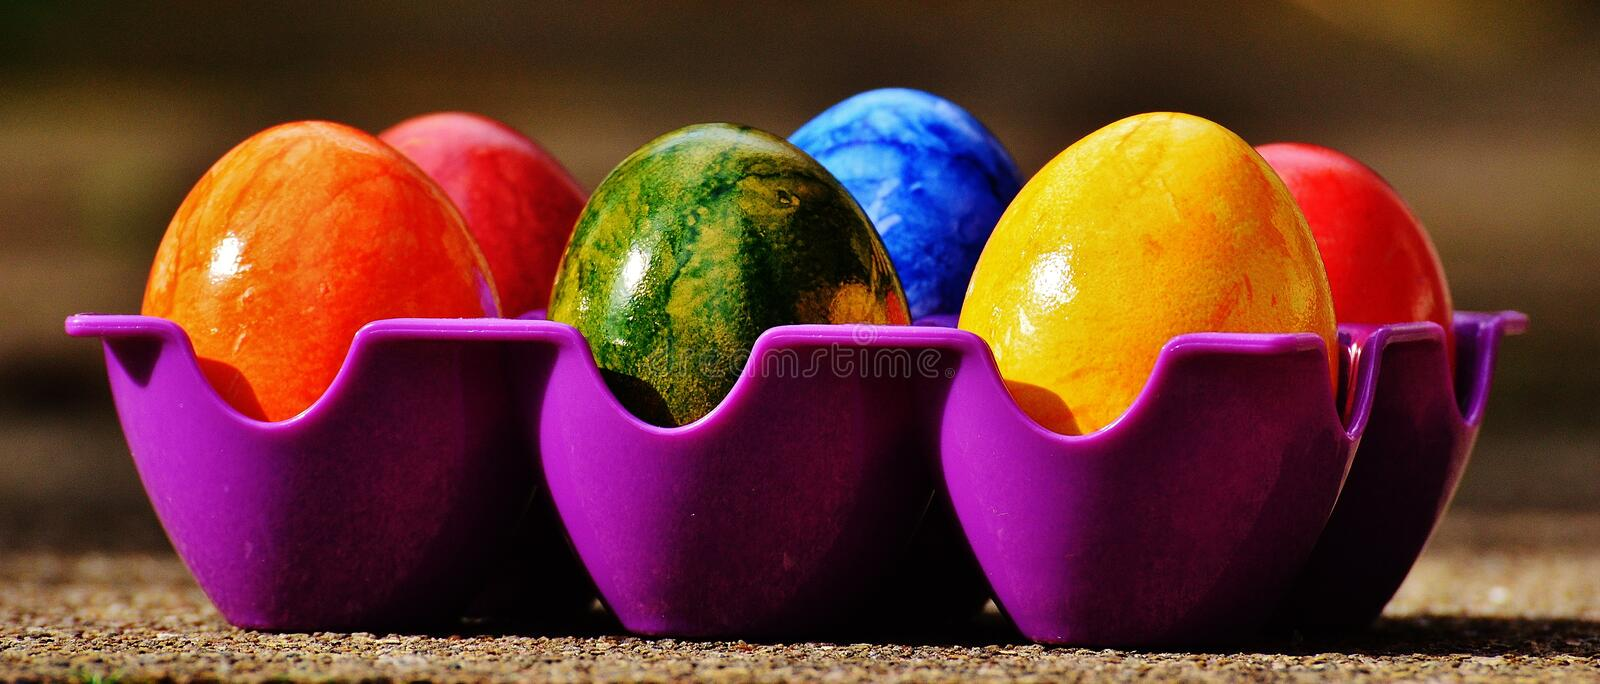 Easter Egg, Still Life Photography, Close Up, Vegetable royalty free stock photography